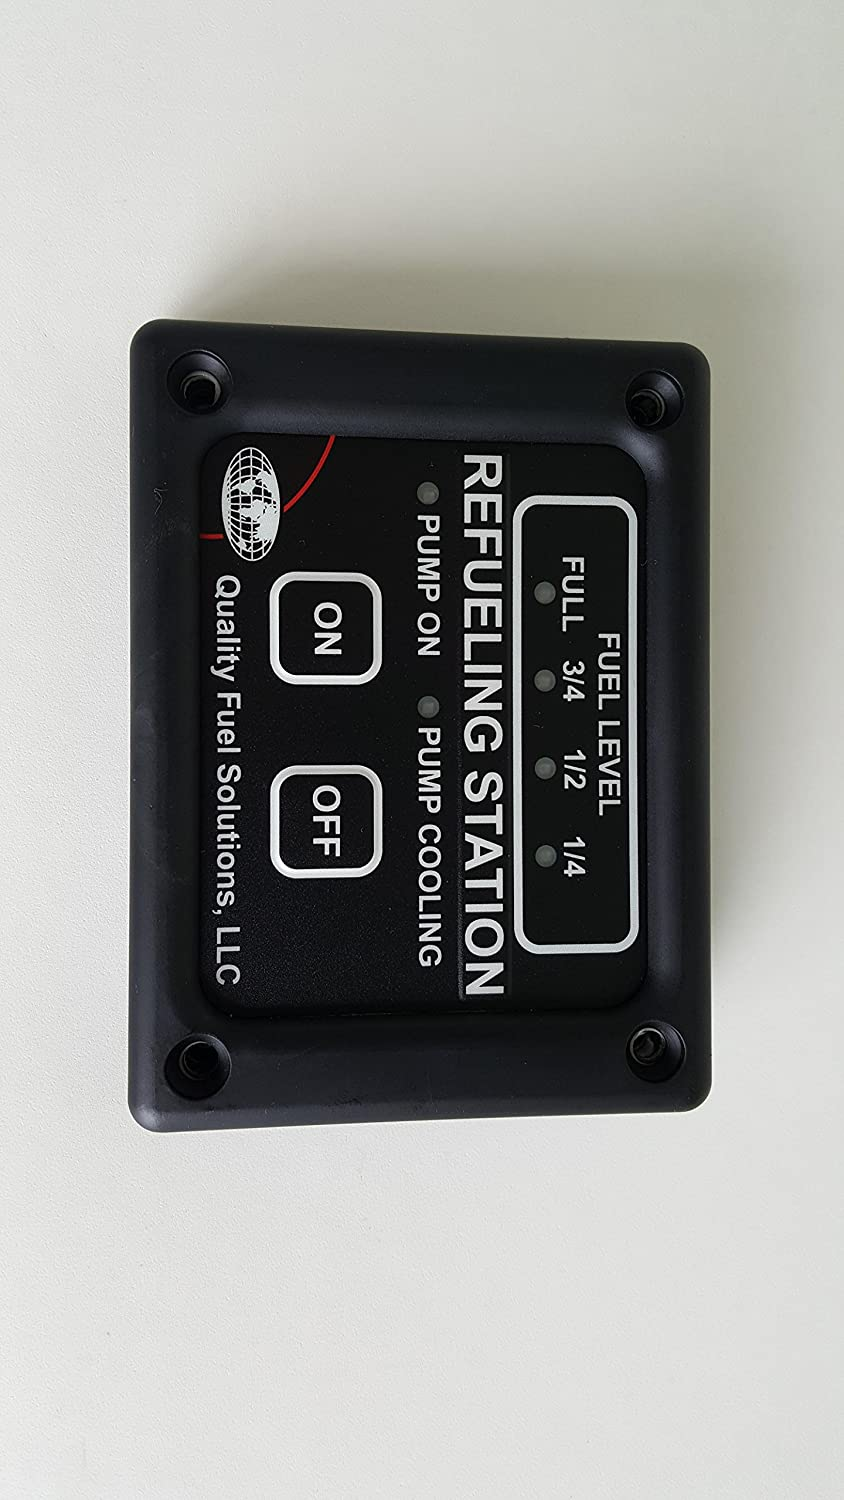 Switches Toy Hauler RV Refueling Tank Fuel Pump Control Panel ...